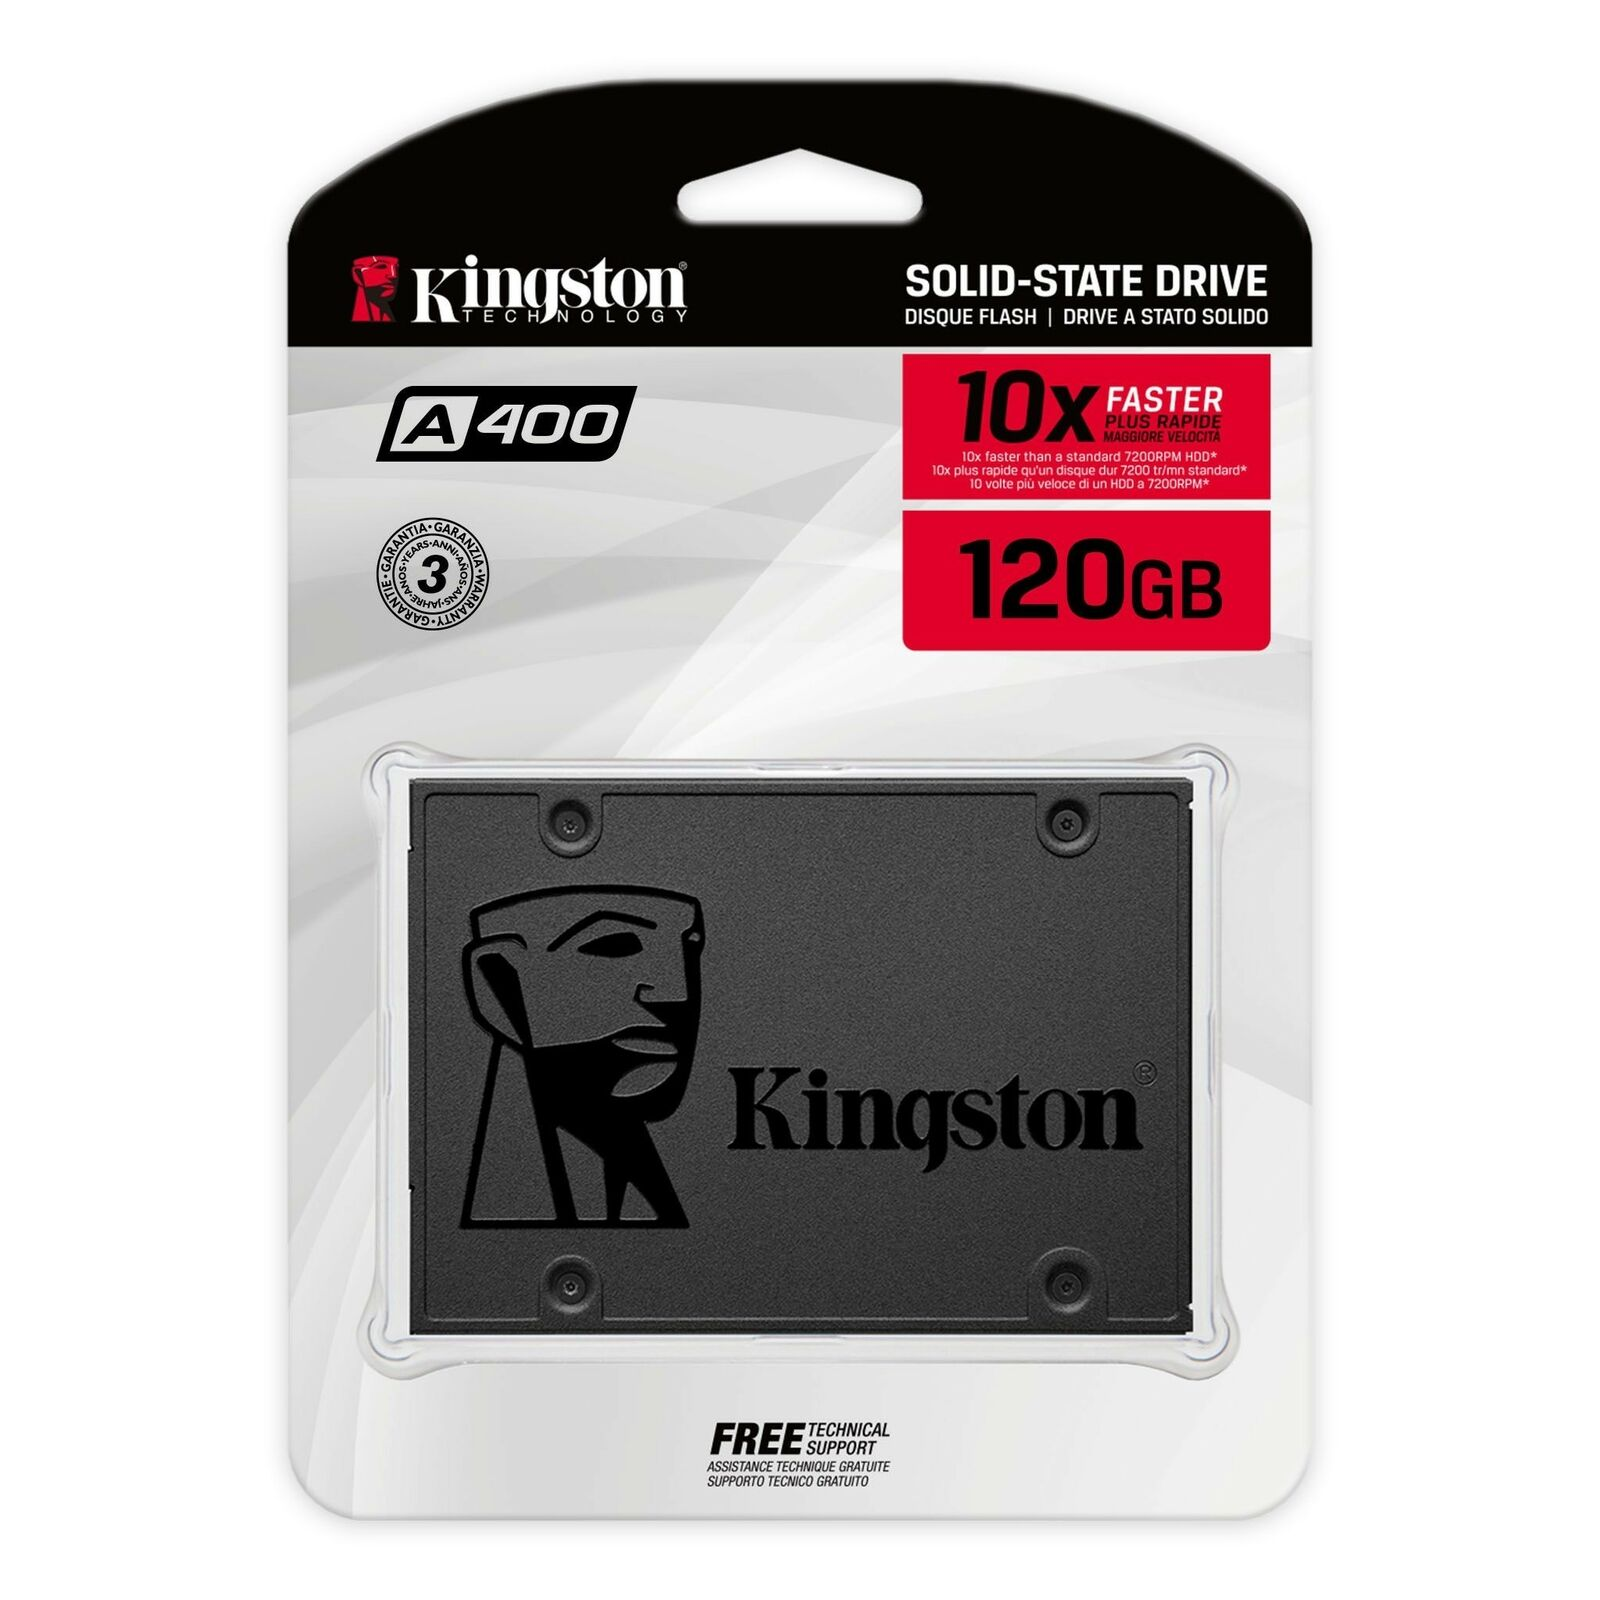 "Kingston 120GB 240GB 480GB 960GB SSD SATA 3.0 III 2.5"" Solid State Drive A400. Buy it now for 29.99"